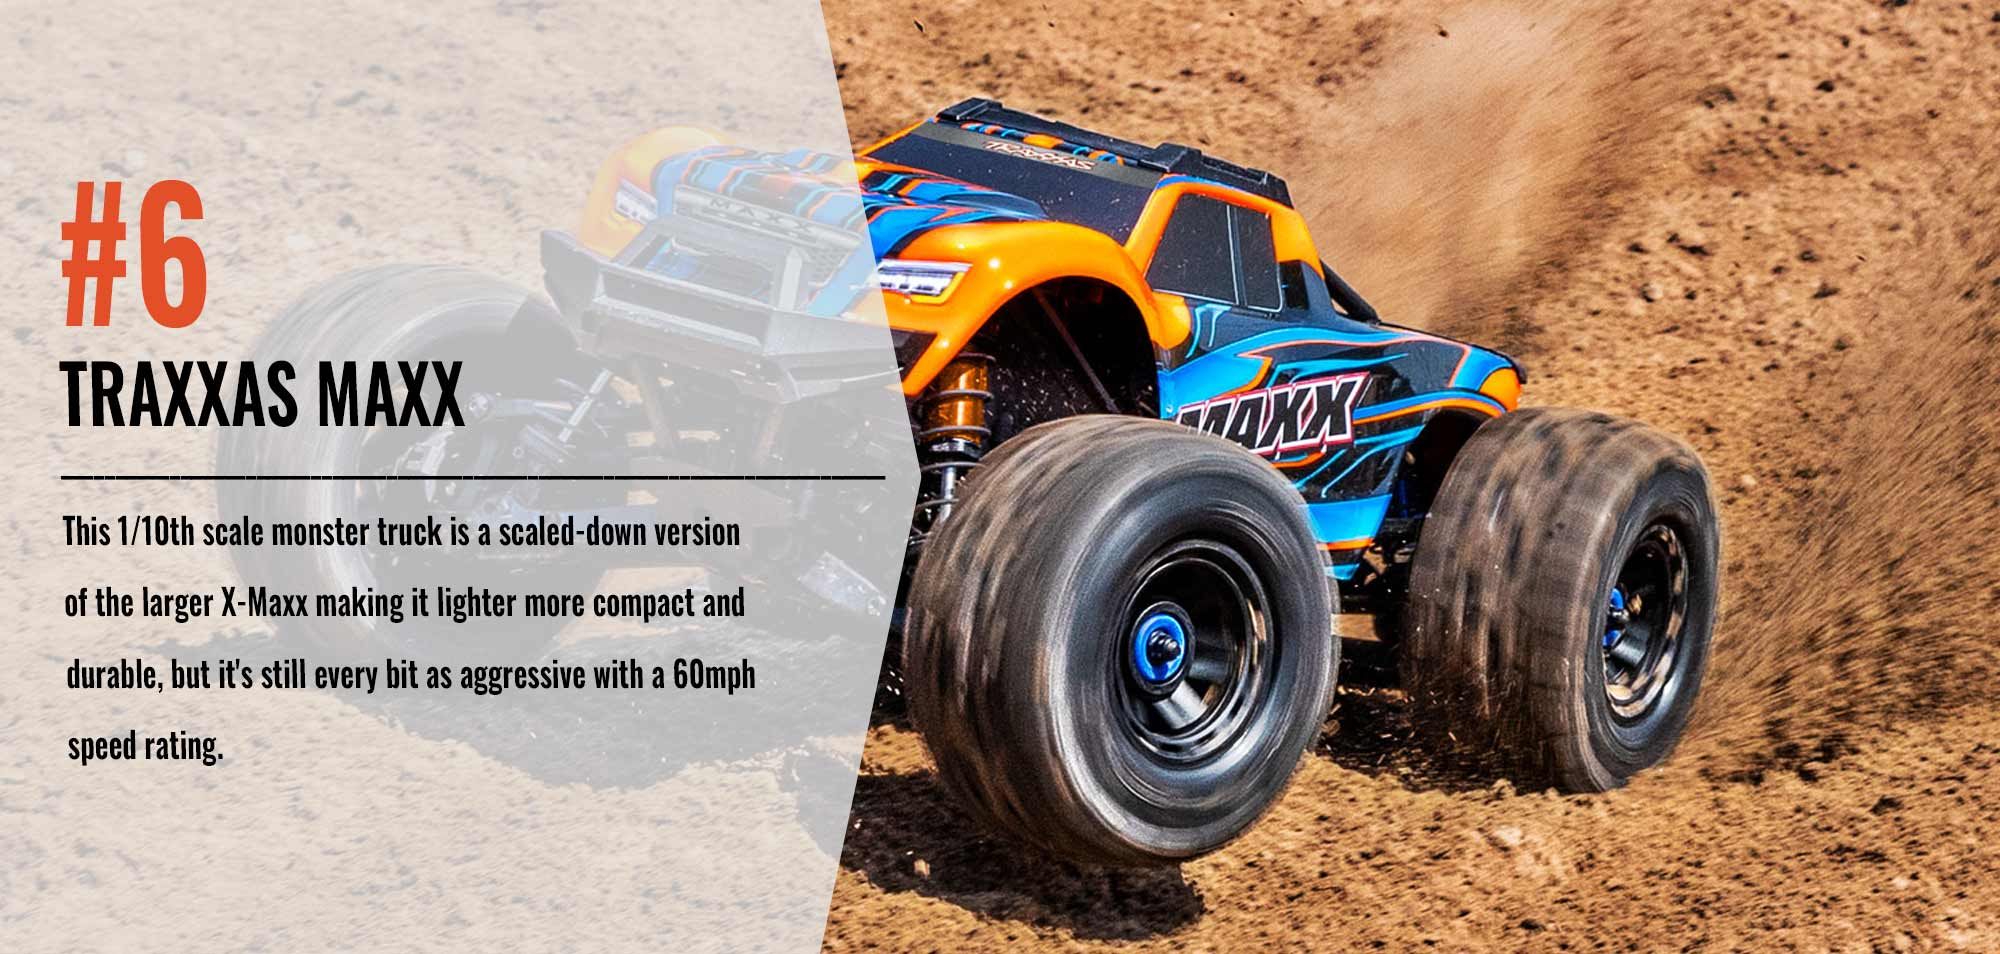 Number Six in our Top 10 List - Traxxas Maxx